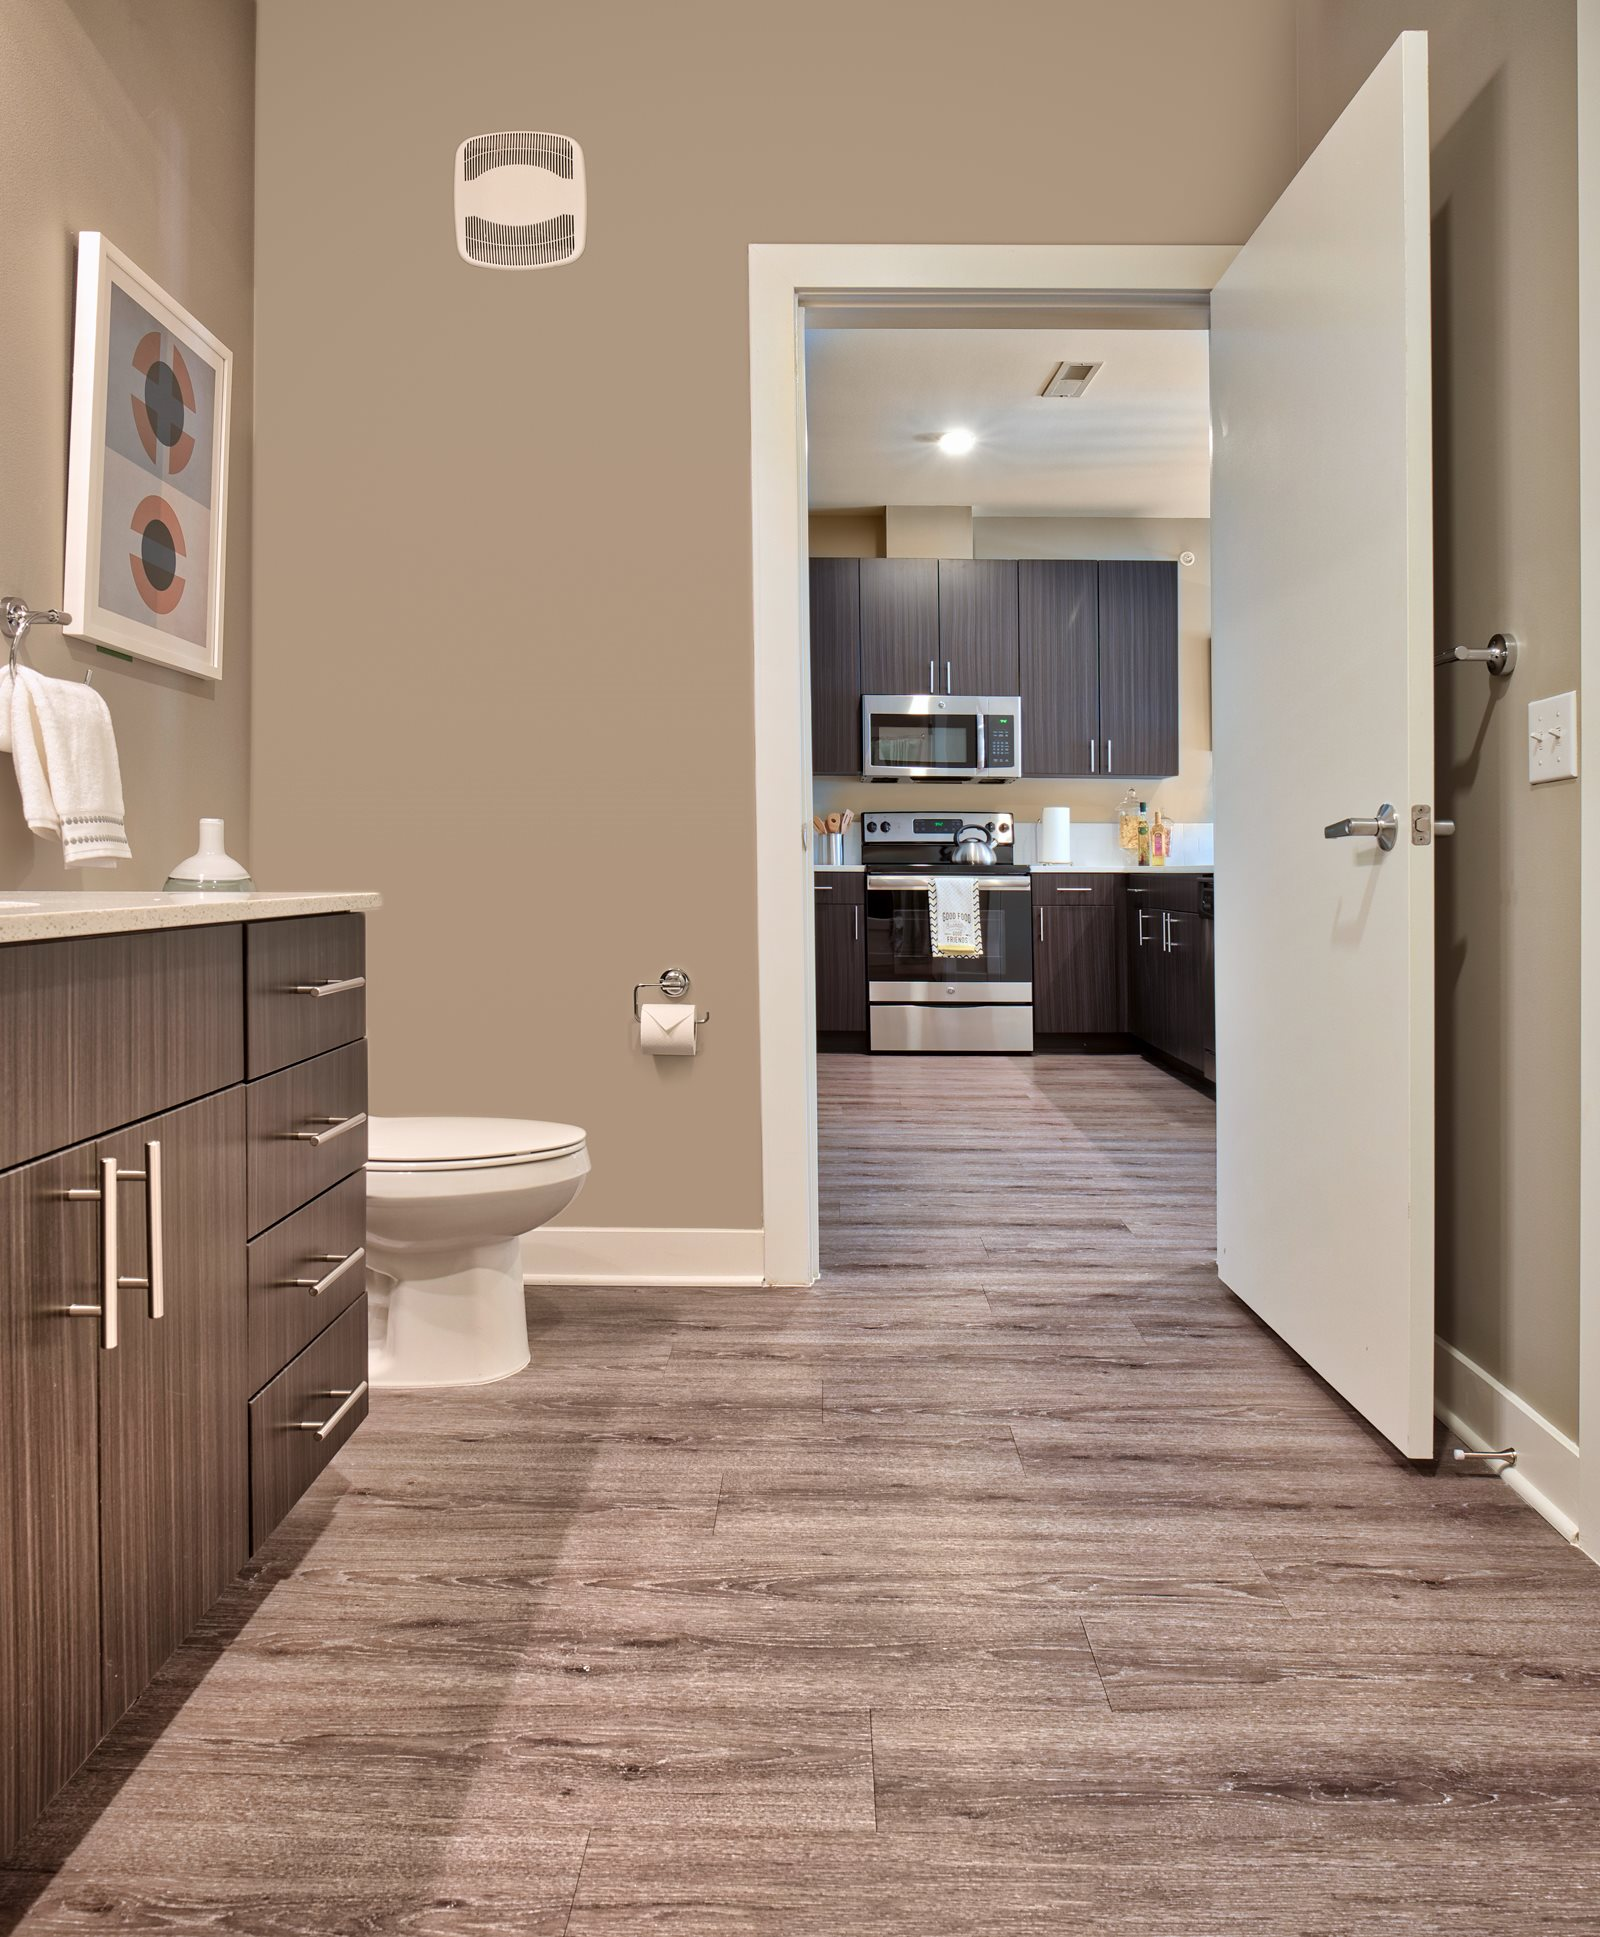 Bathrooms with Extra Storage Cabinetry at The Ridge at Robinson Apartments, Pennsylvania